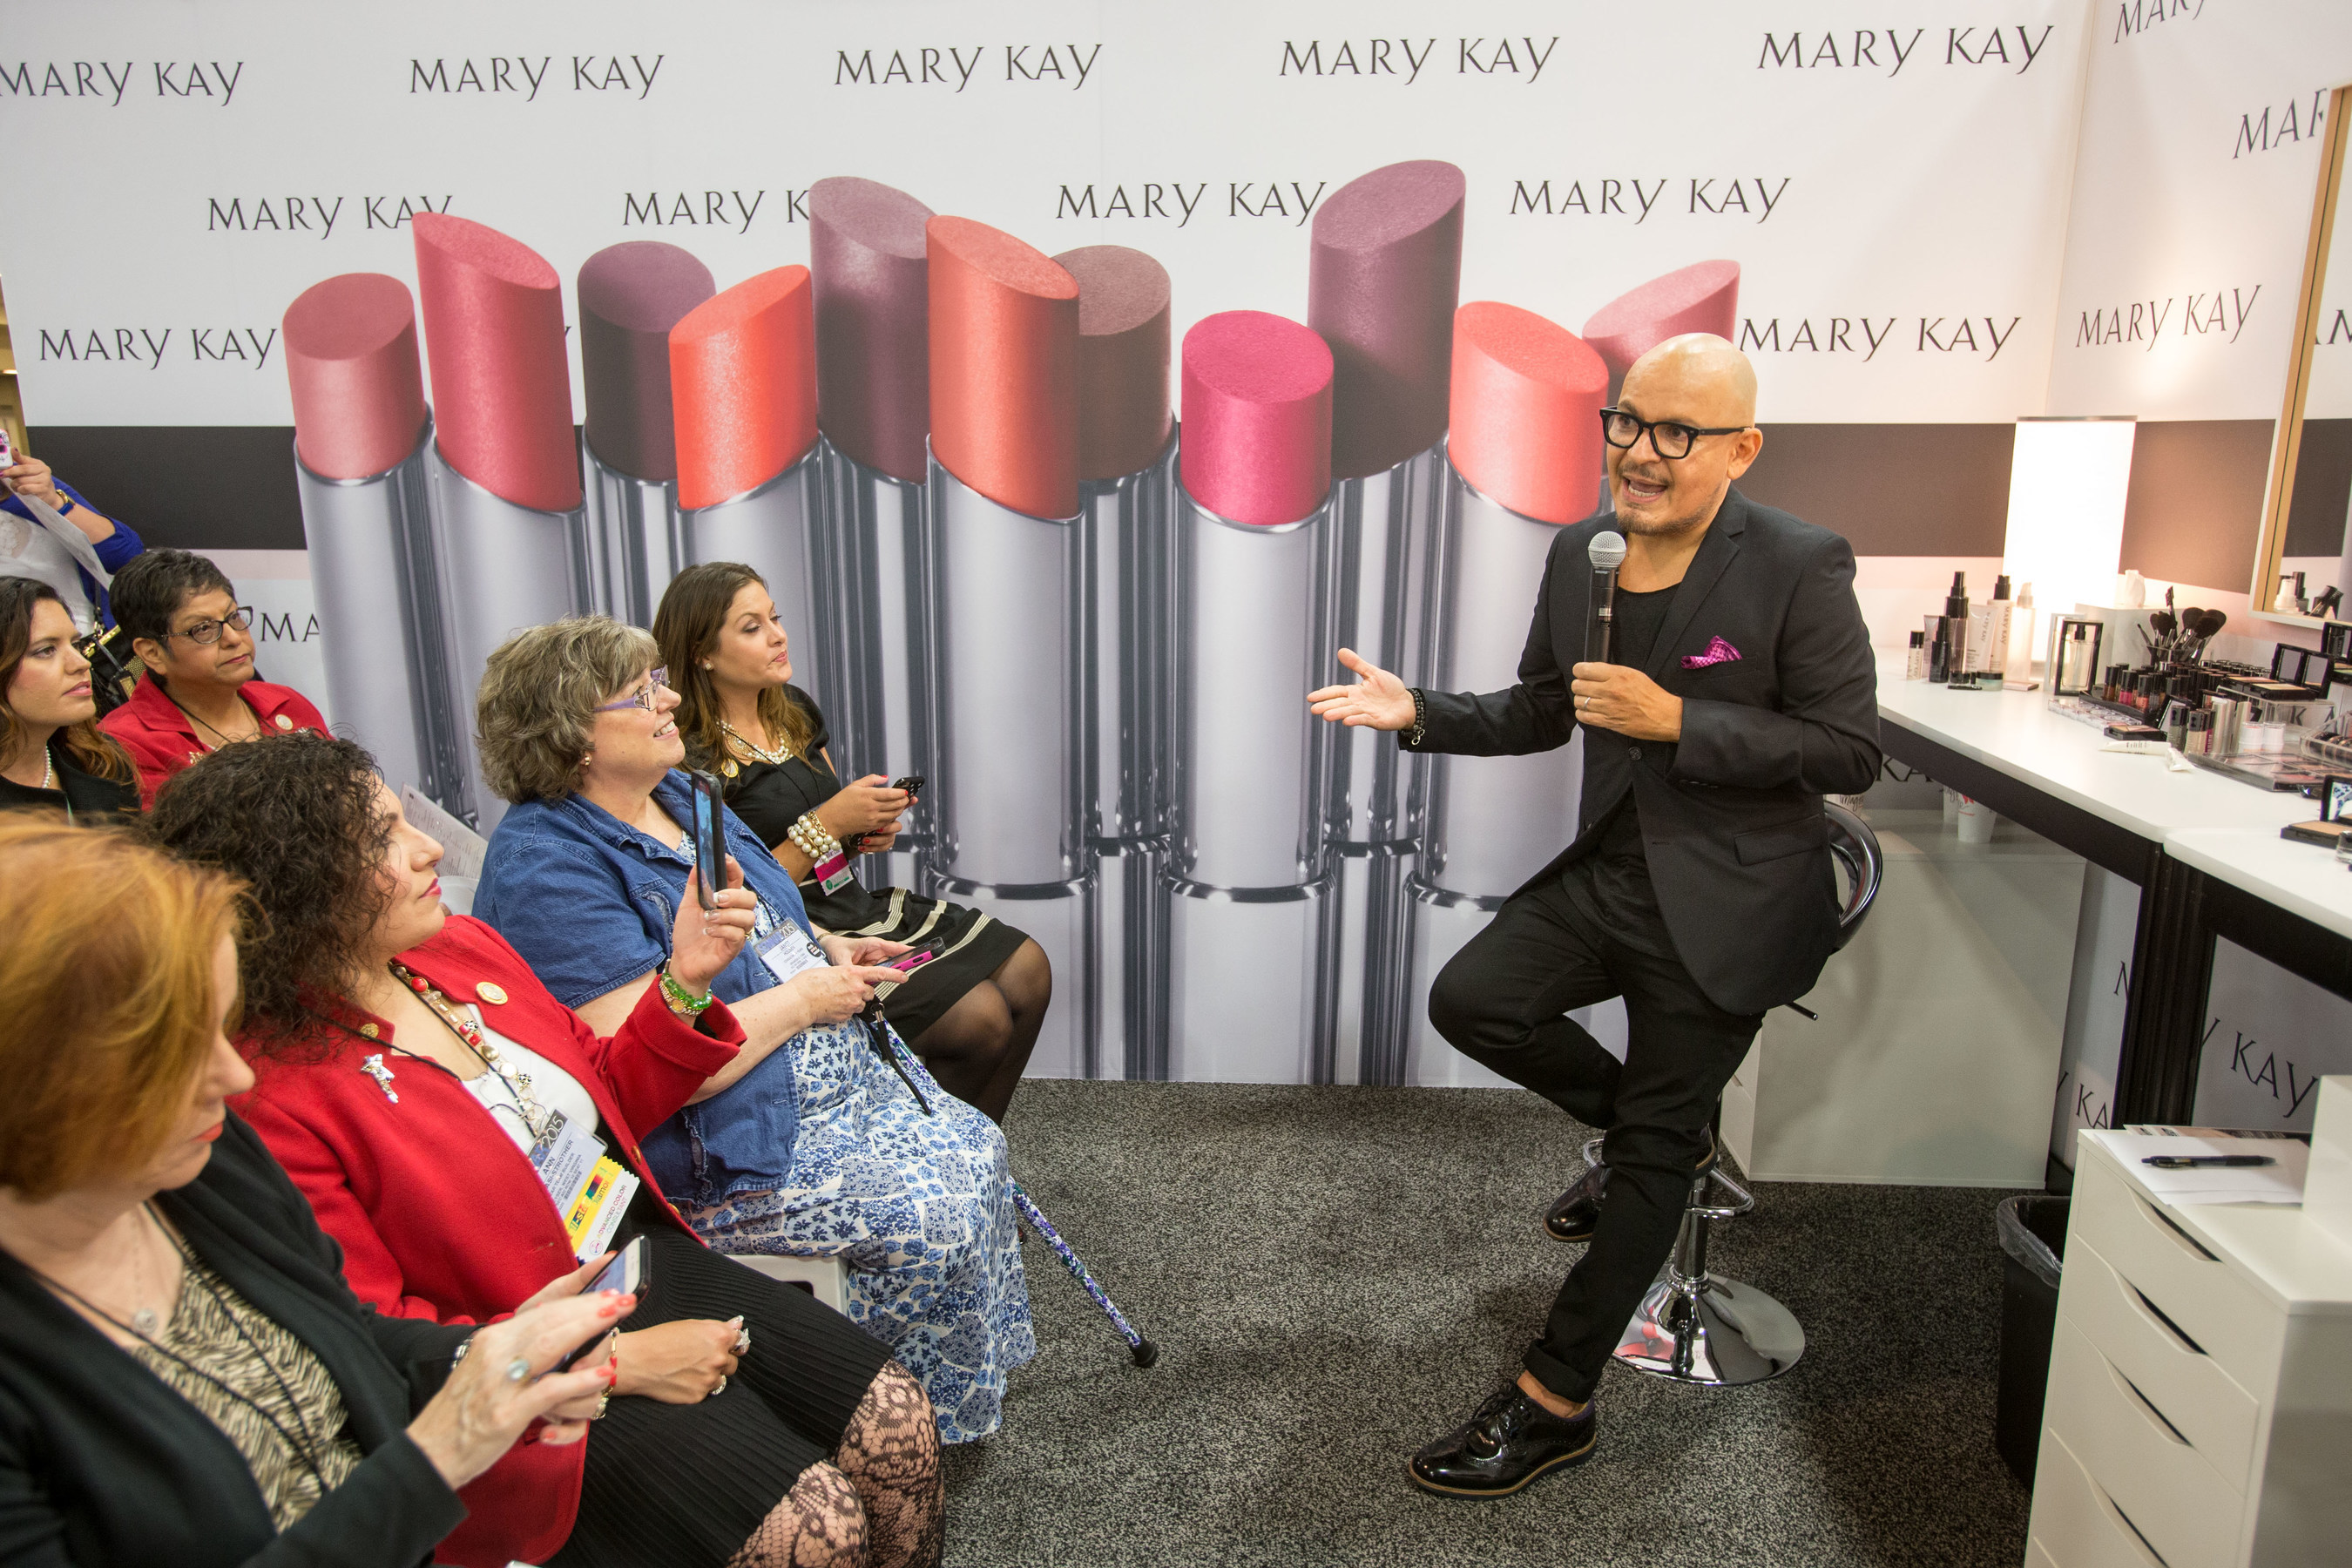 Luis Casco is named Global Beauty Ambassador for Mary Kay Inc. In this new role , Casco will advise Mary Kay and its independent sales force on topics including product development, color education, sales education and social influencer events.